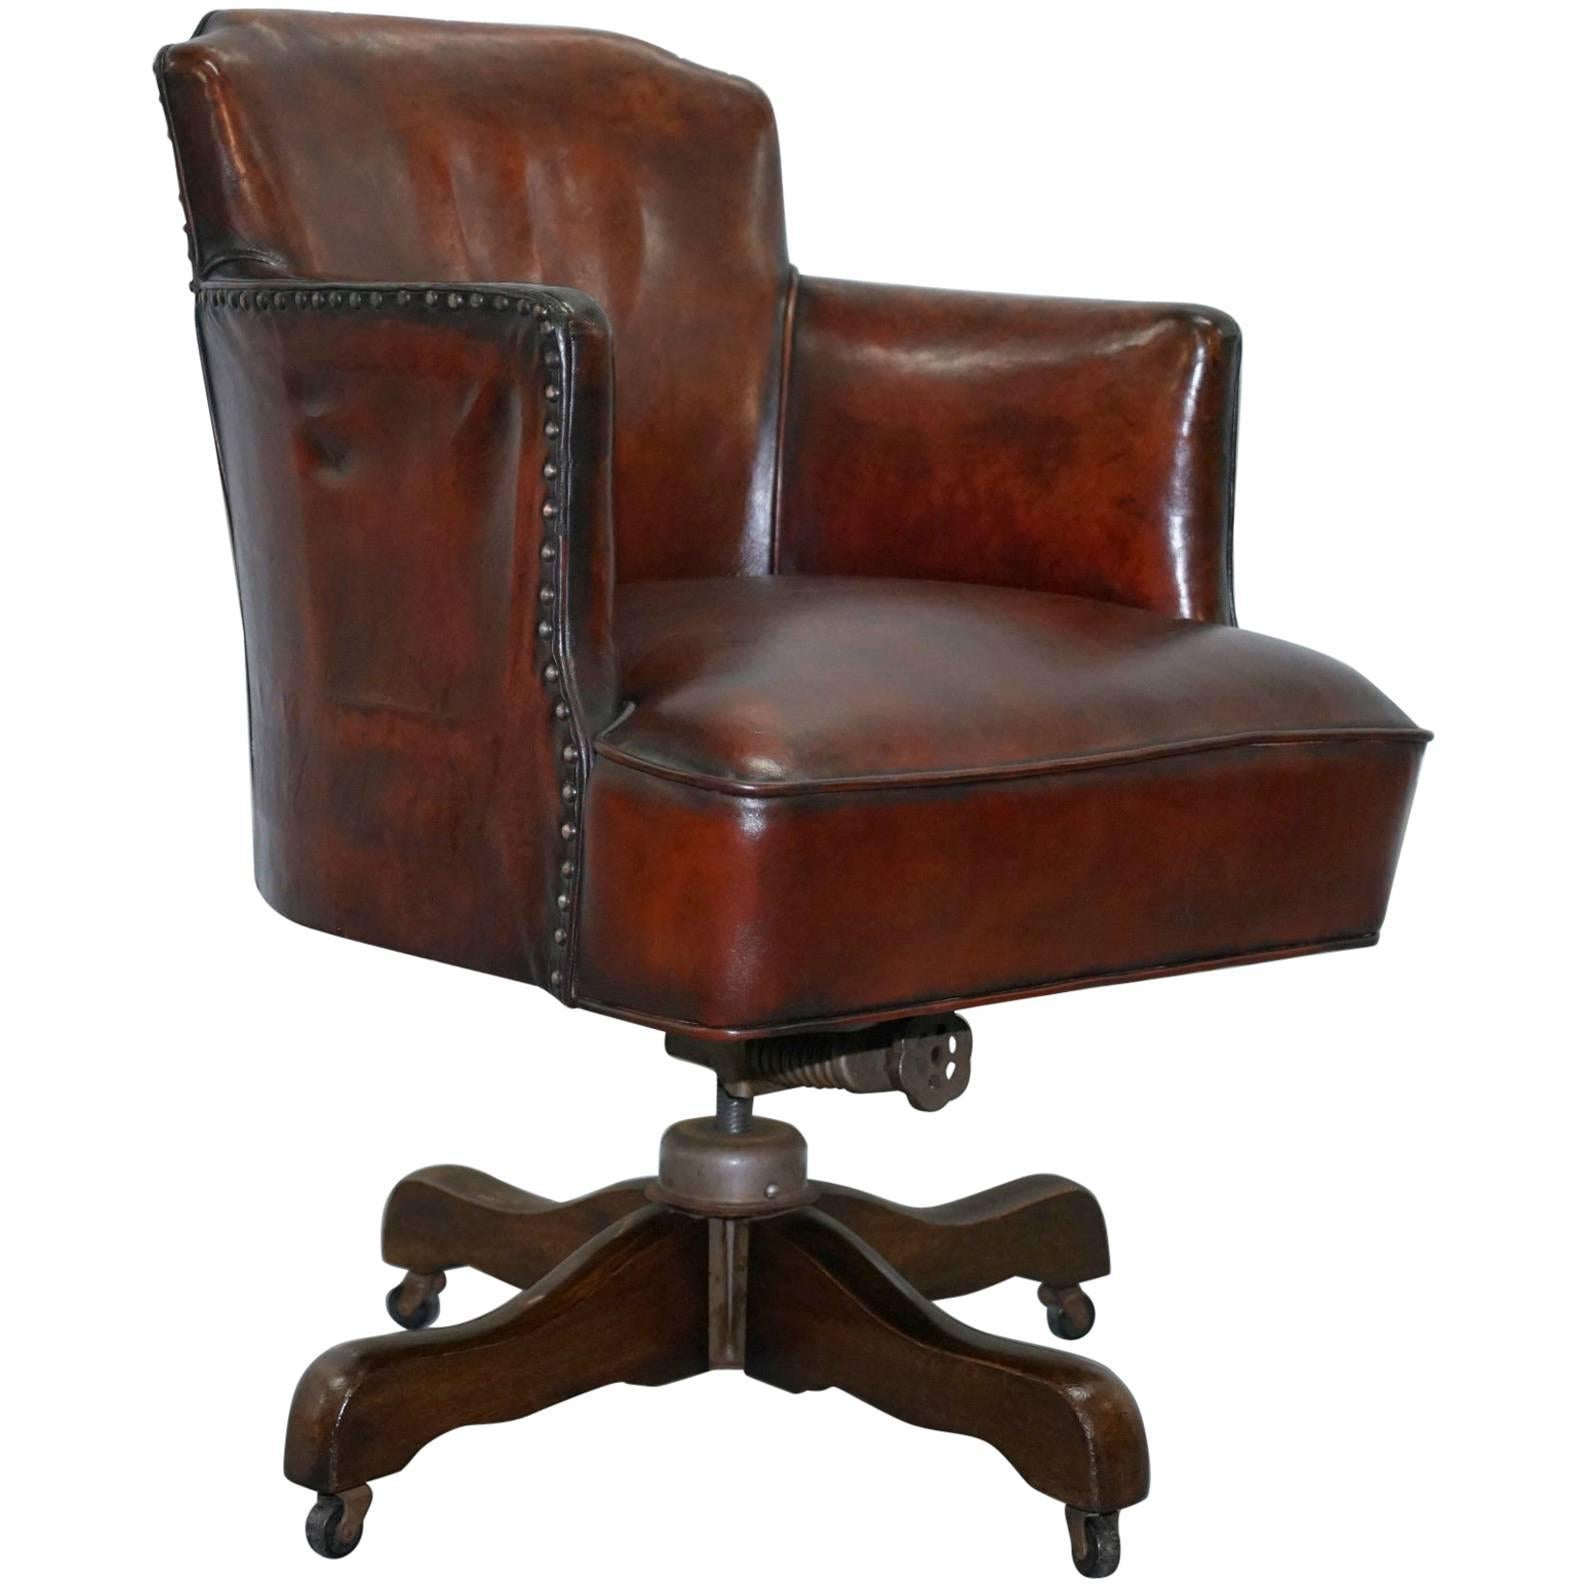 Fully Restored 1920s Hillcrest Antique Whisky Brown Leather Captains Chair  For Sale